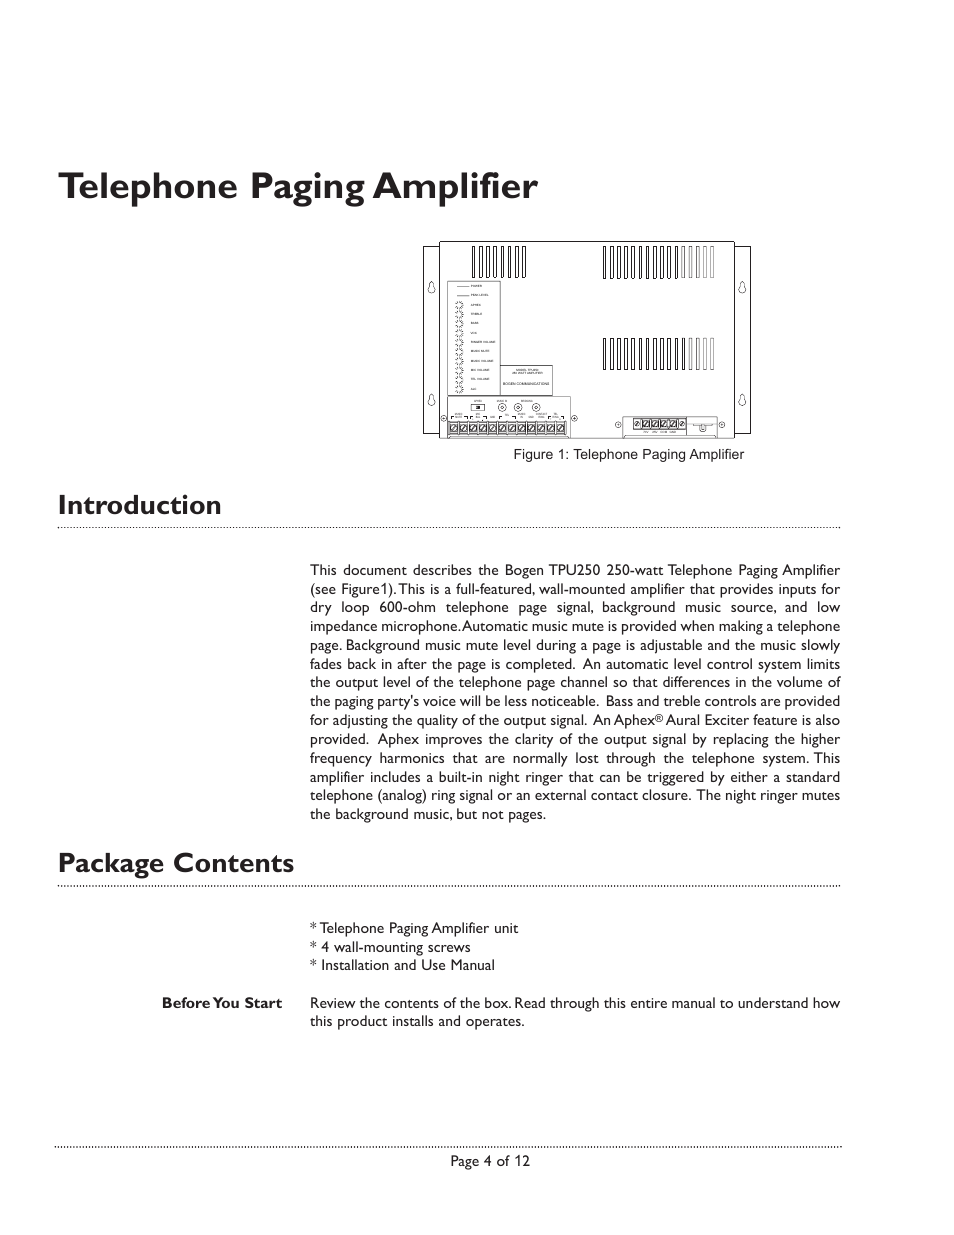 Telephone paging amplifier, Introduction, Package contents   Page 4 of 12,  Figure 1